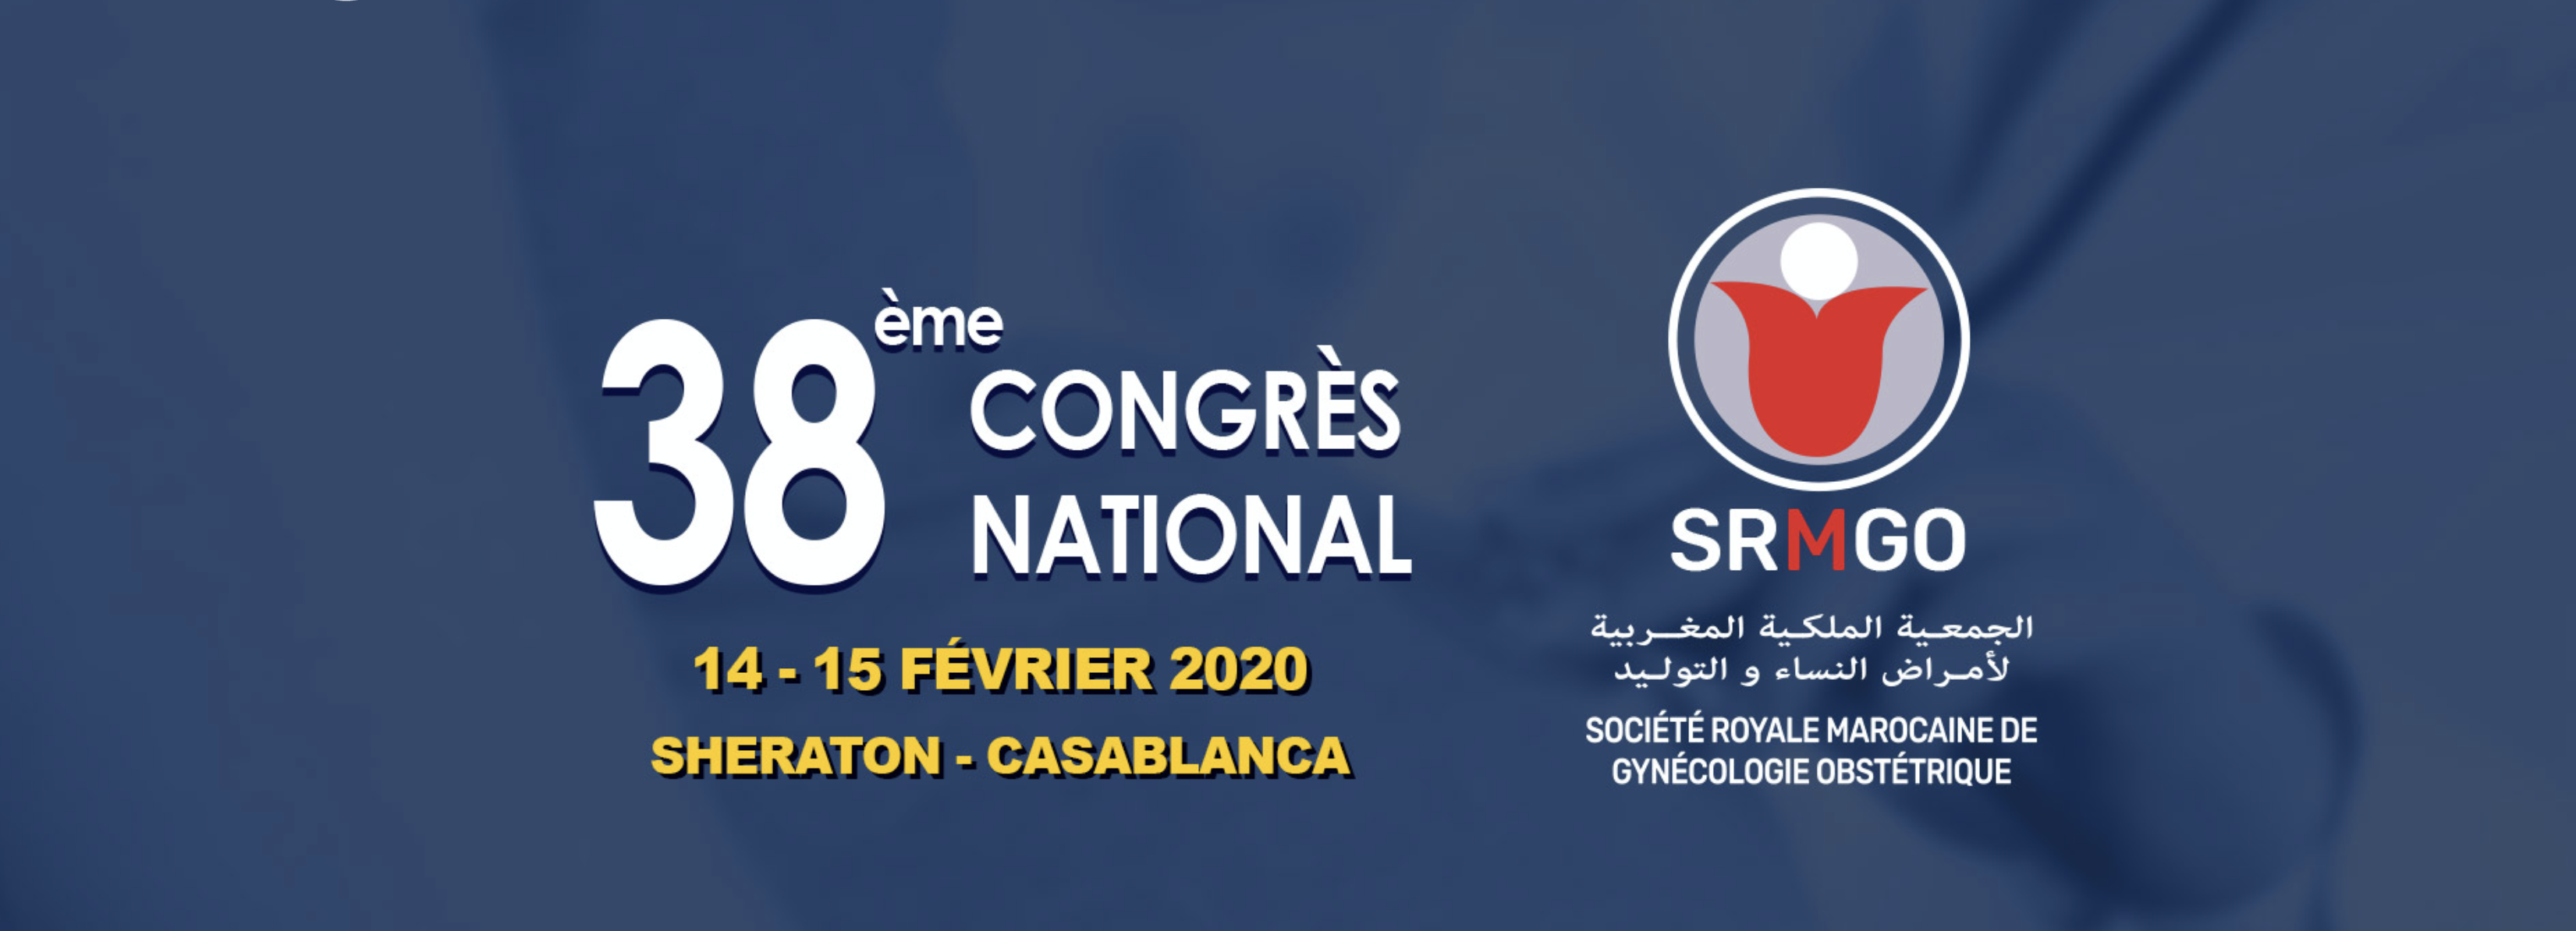 Haifu Medical @ SRMGO, Casablanca, Morocco | 14-15 February, 2020